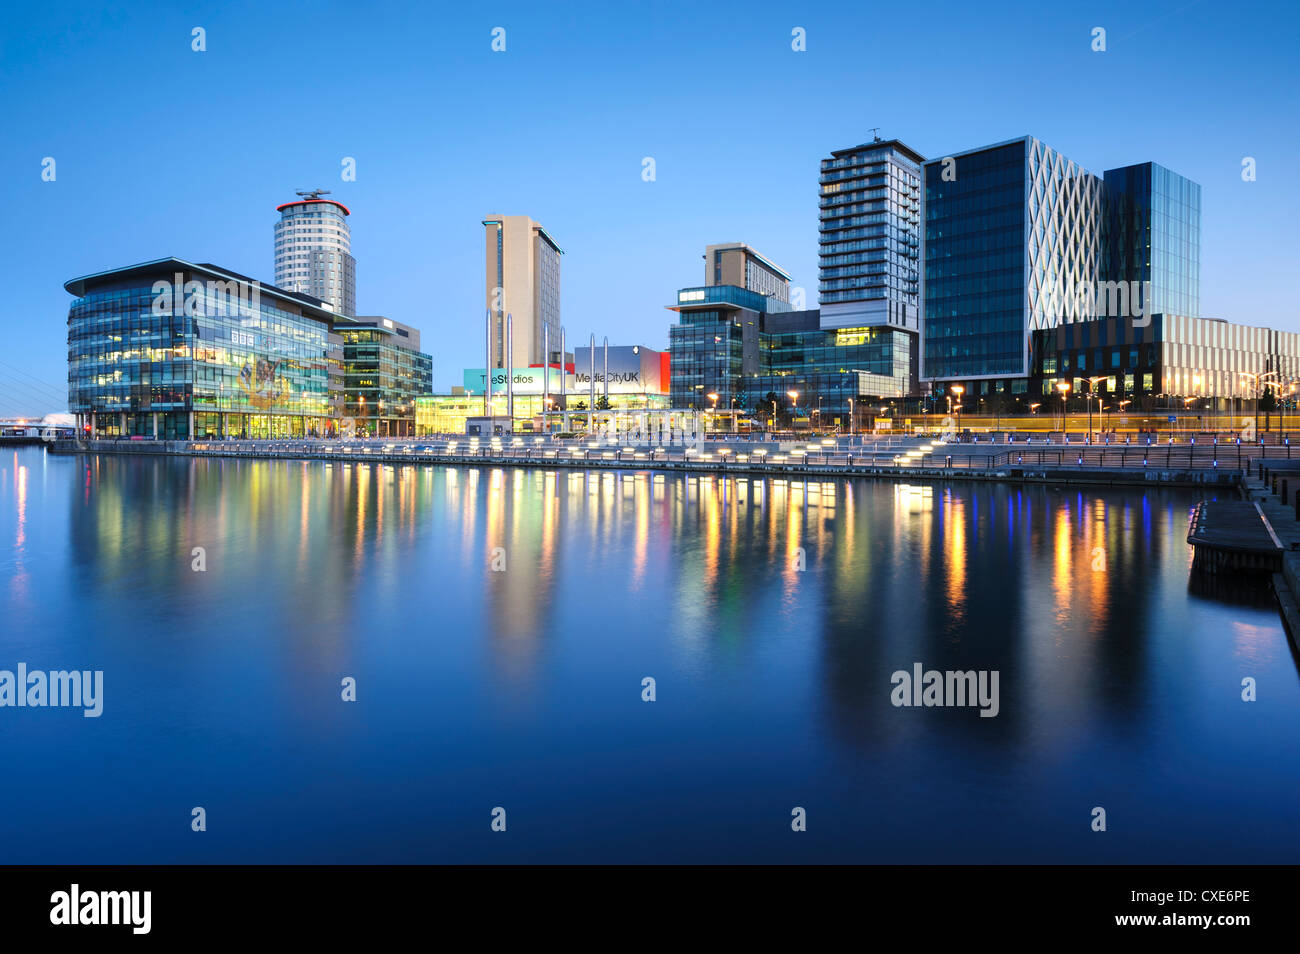 Dawn at MediaCity UK home of the BBC, Salford Quays, Manchester, Greater Manchester, England, United Kingdom, Europe - Stock Image